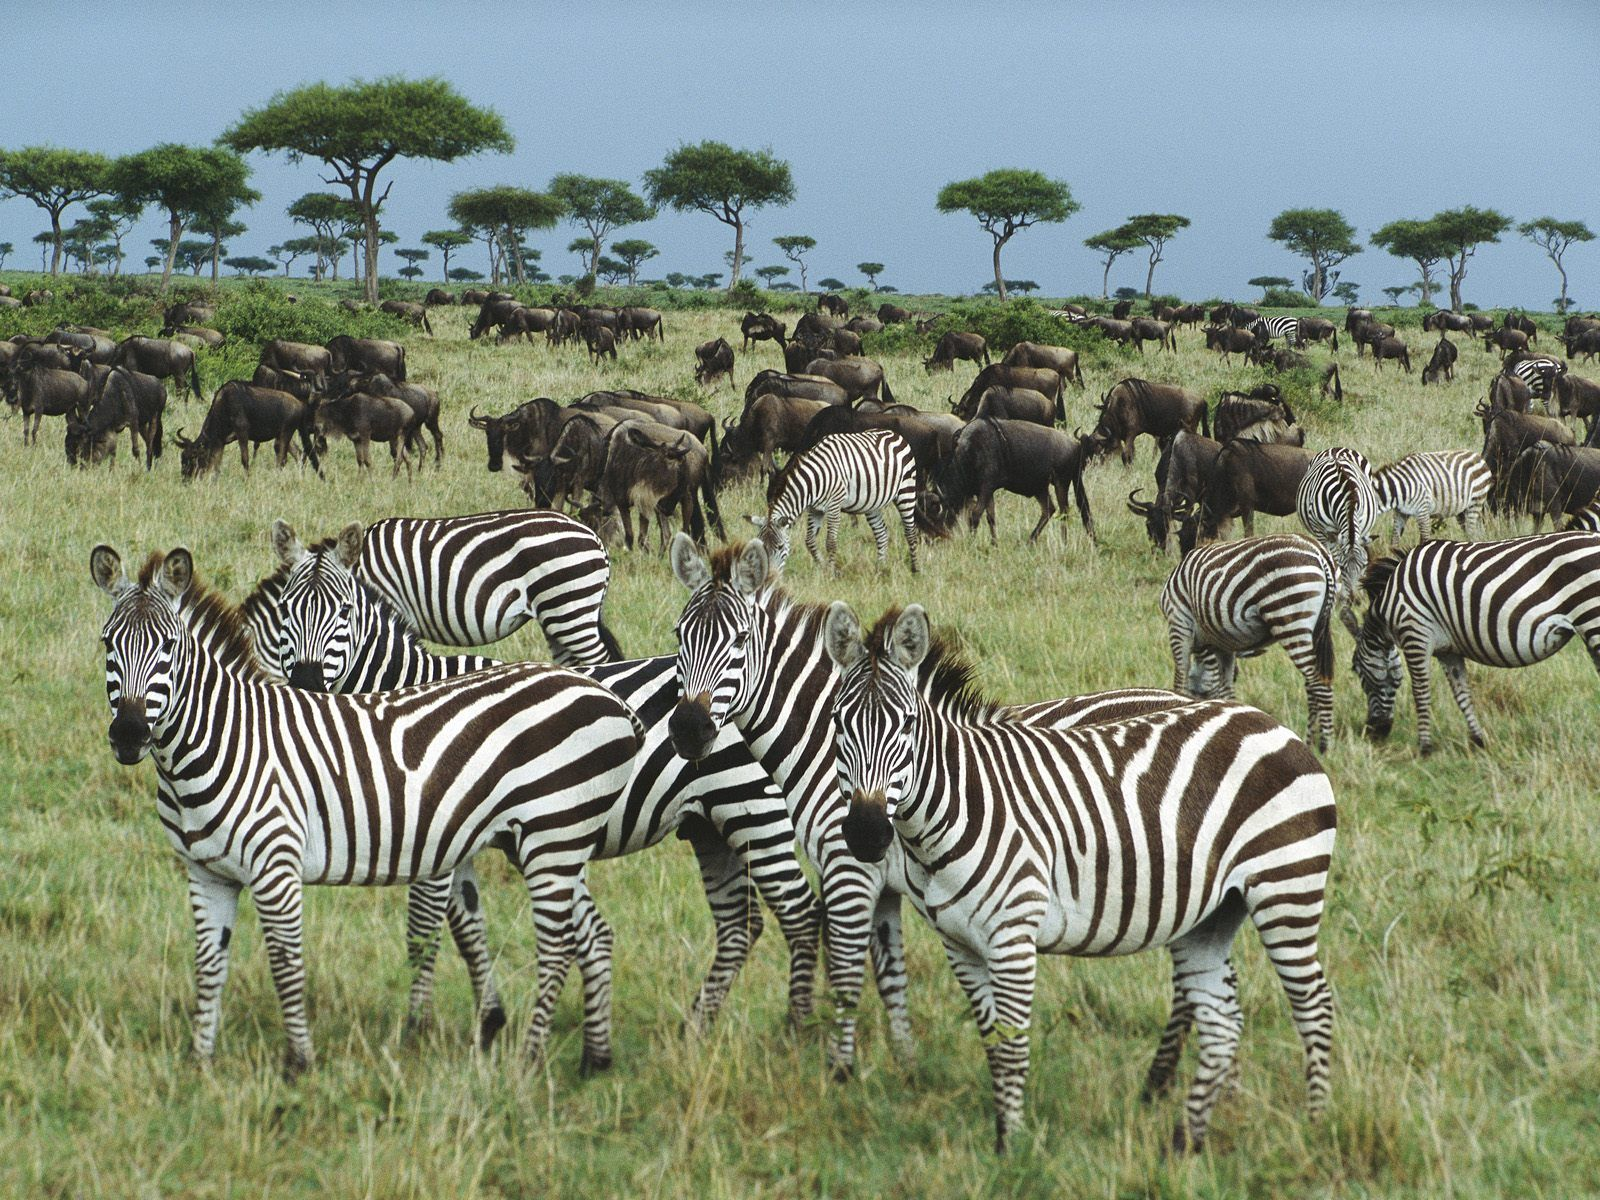 Google Image A group of zebras in foreground and